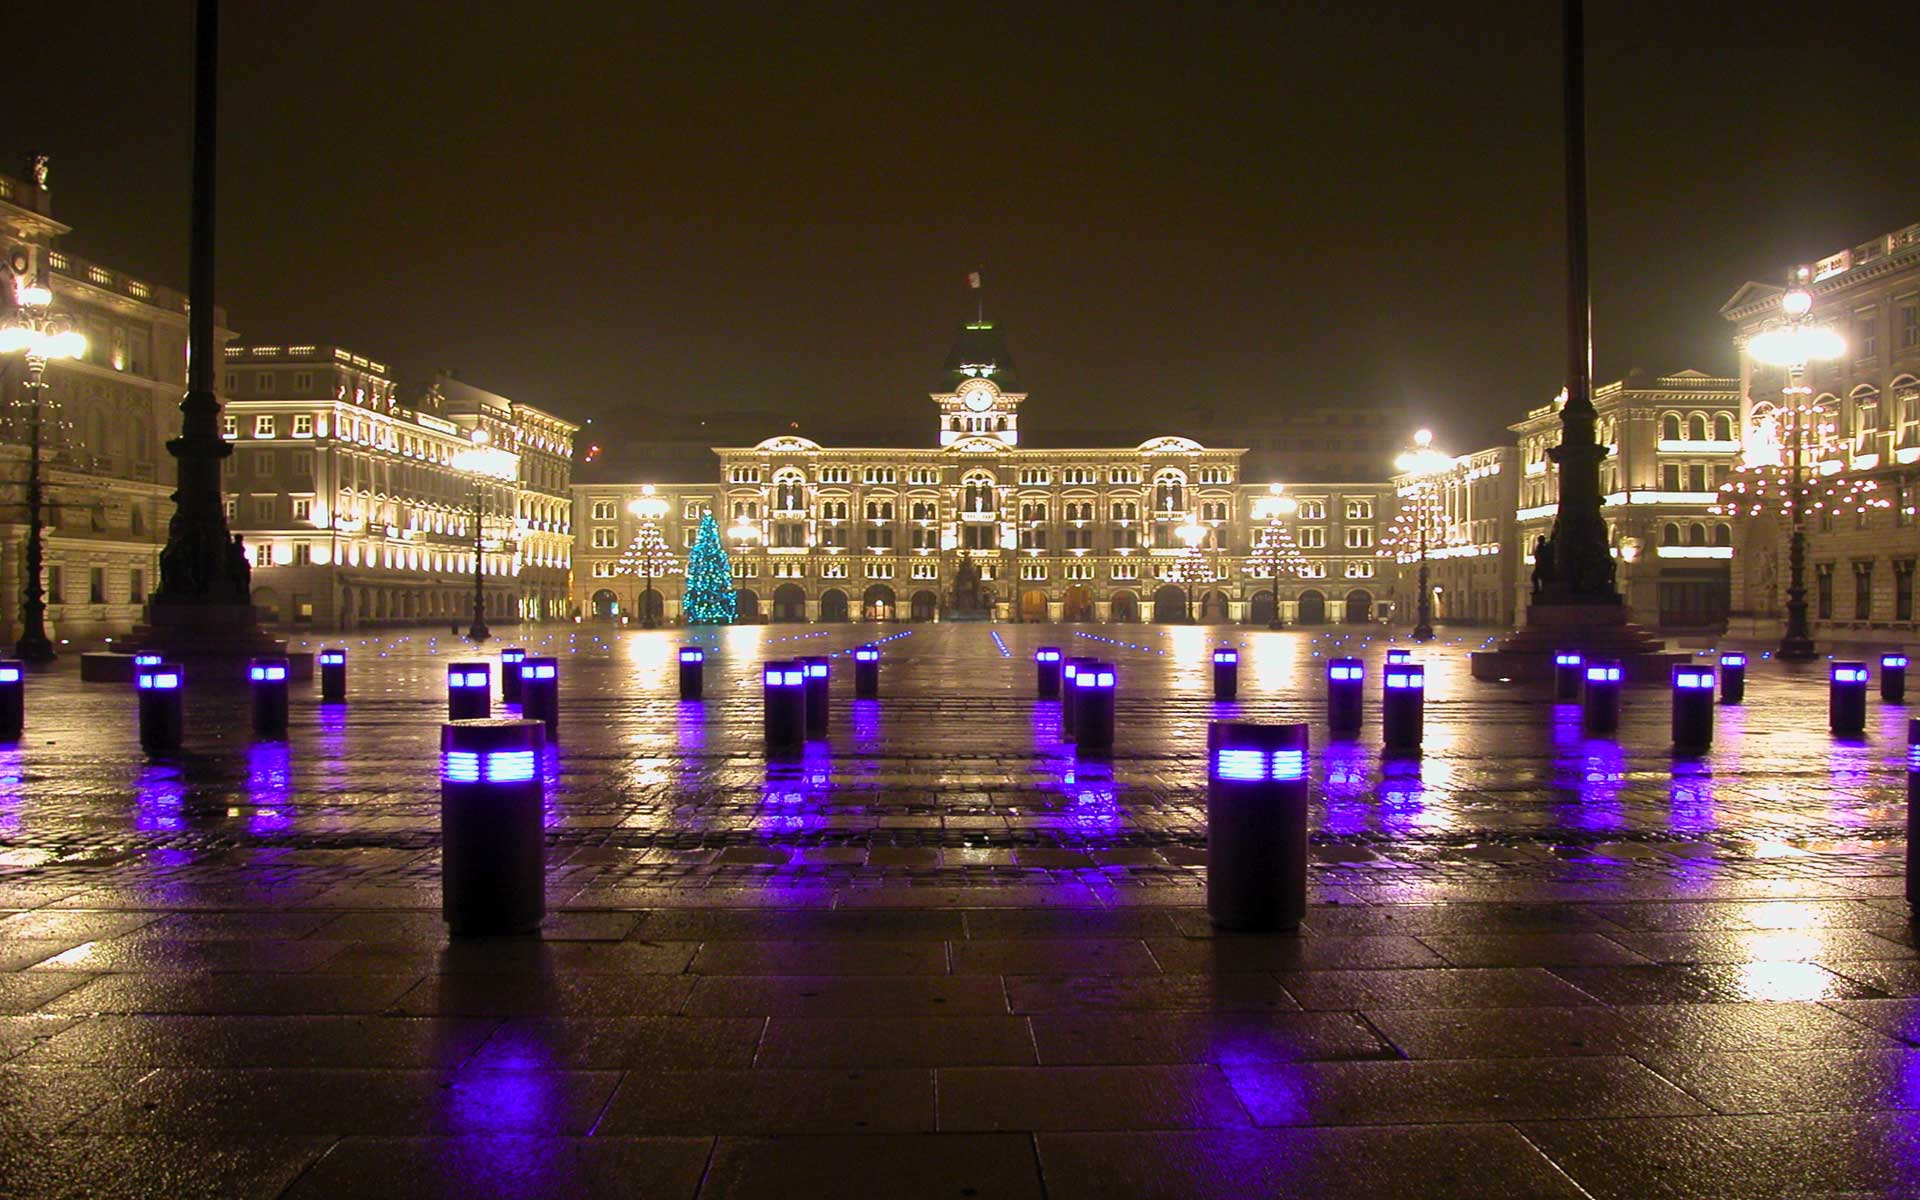 Trieste's Huge Main Plaza at Piazza d'Italia